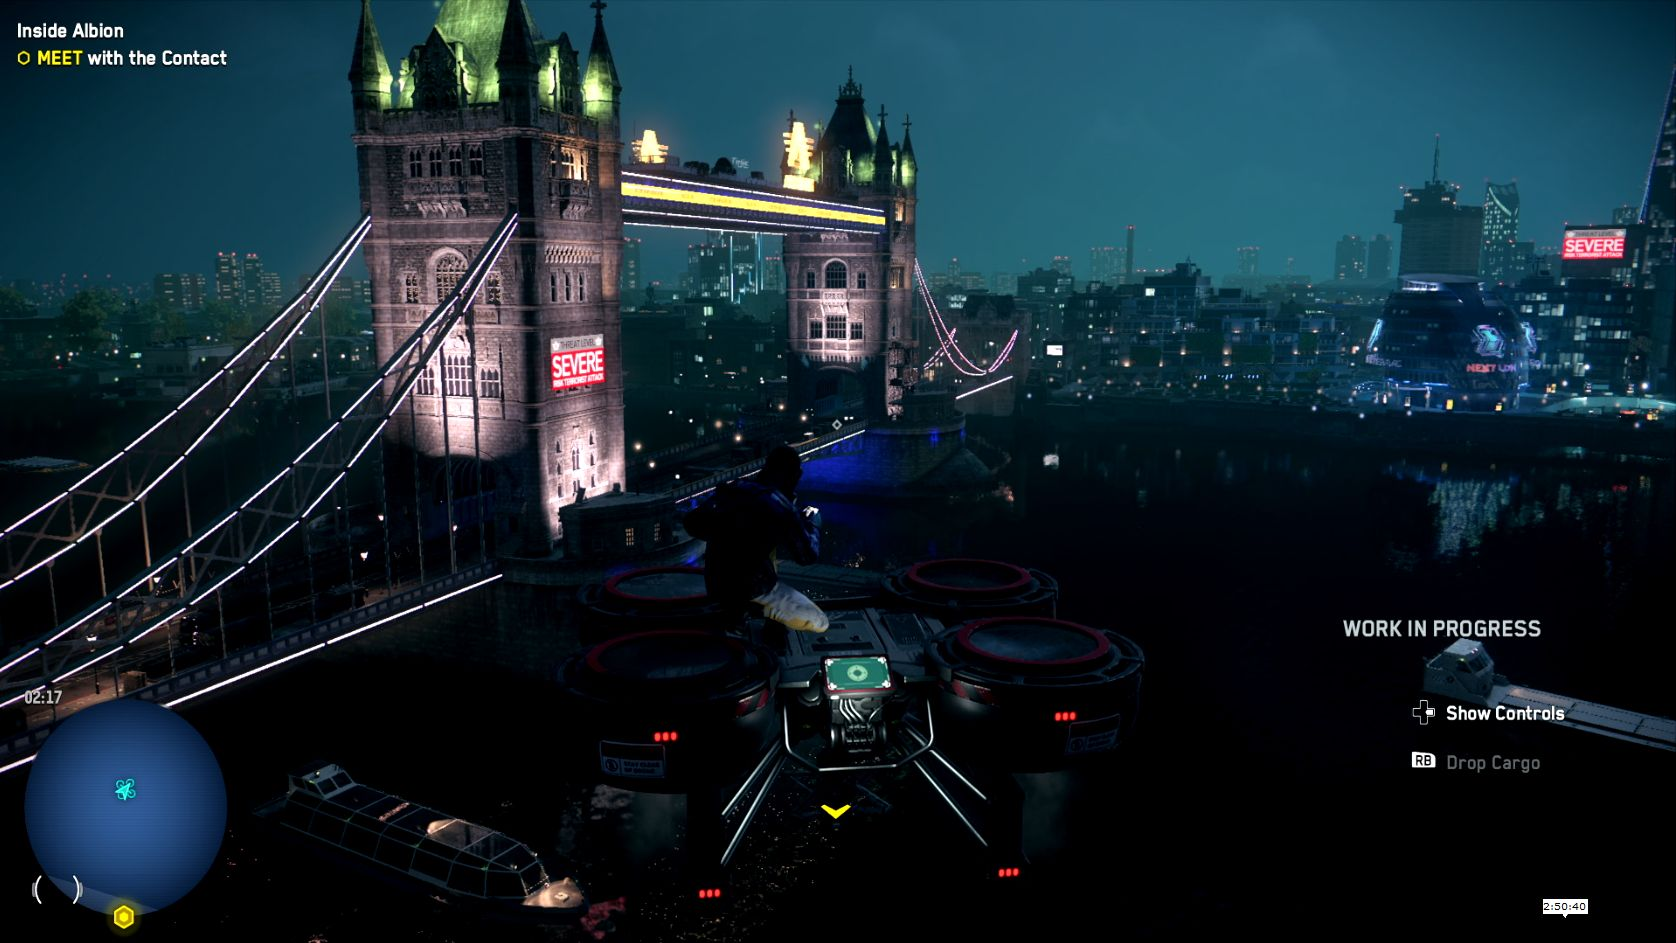 A screenshot showing the player riding a construction drone, flying in the air near Tower Bridge by night